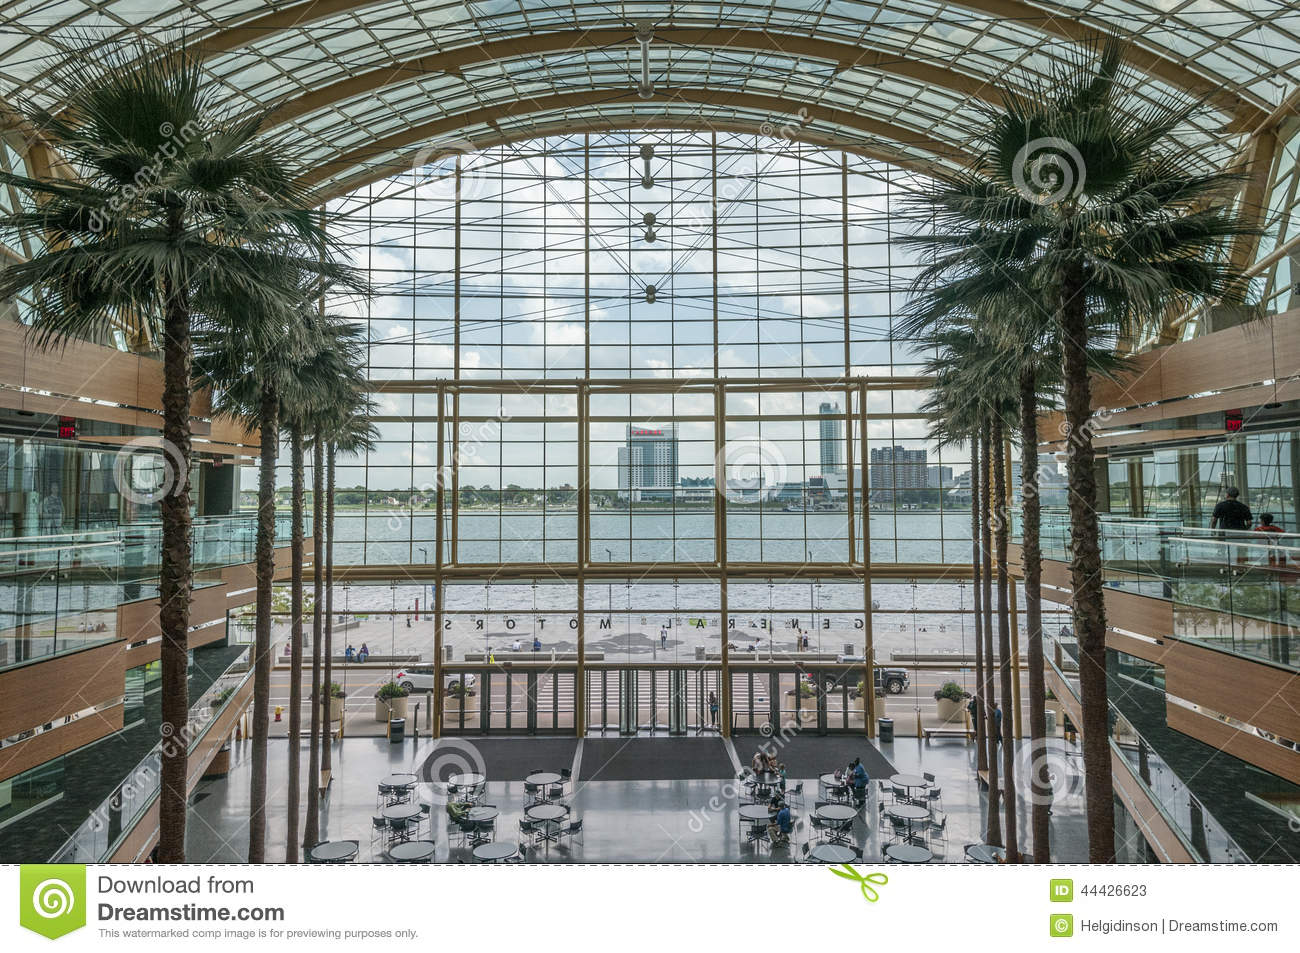 rencen winter garden editorial stock photo image of night 44426623